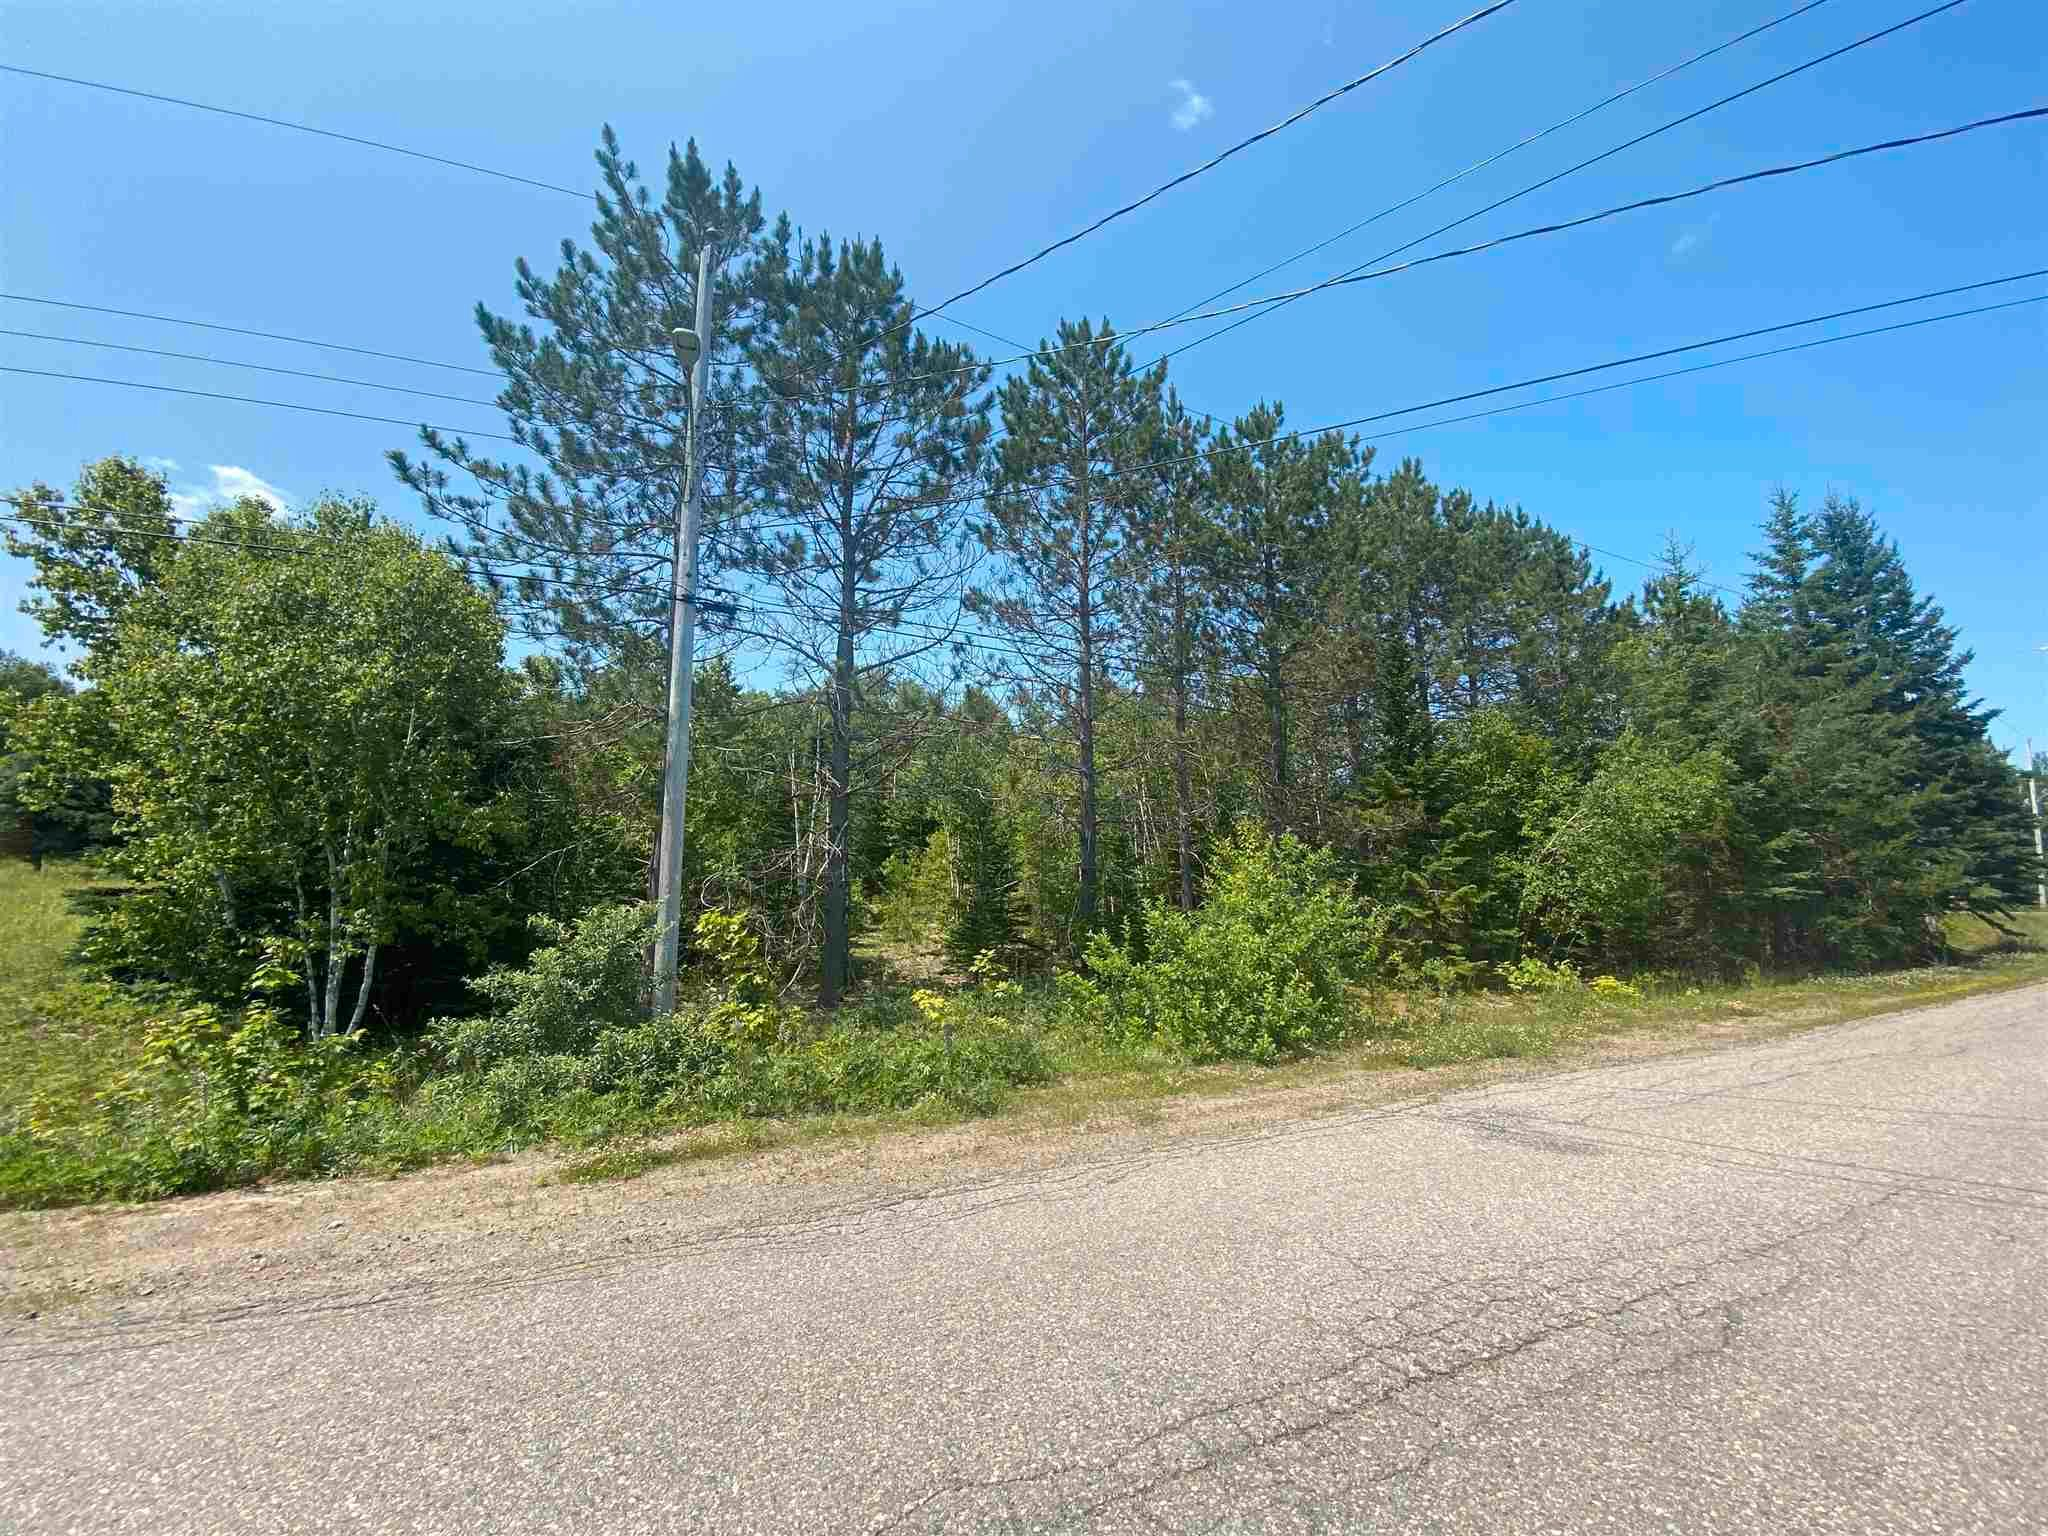 Main Photo: 253B Wildwood Drive in Howie Centre: 202-Sydney River / Coxheath Vacant Land for sale (Cape Breton)  : MLS®# 202118185